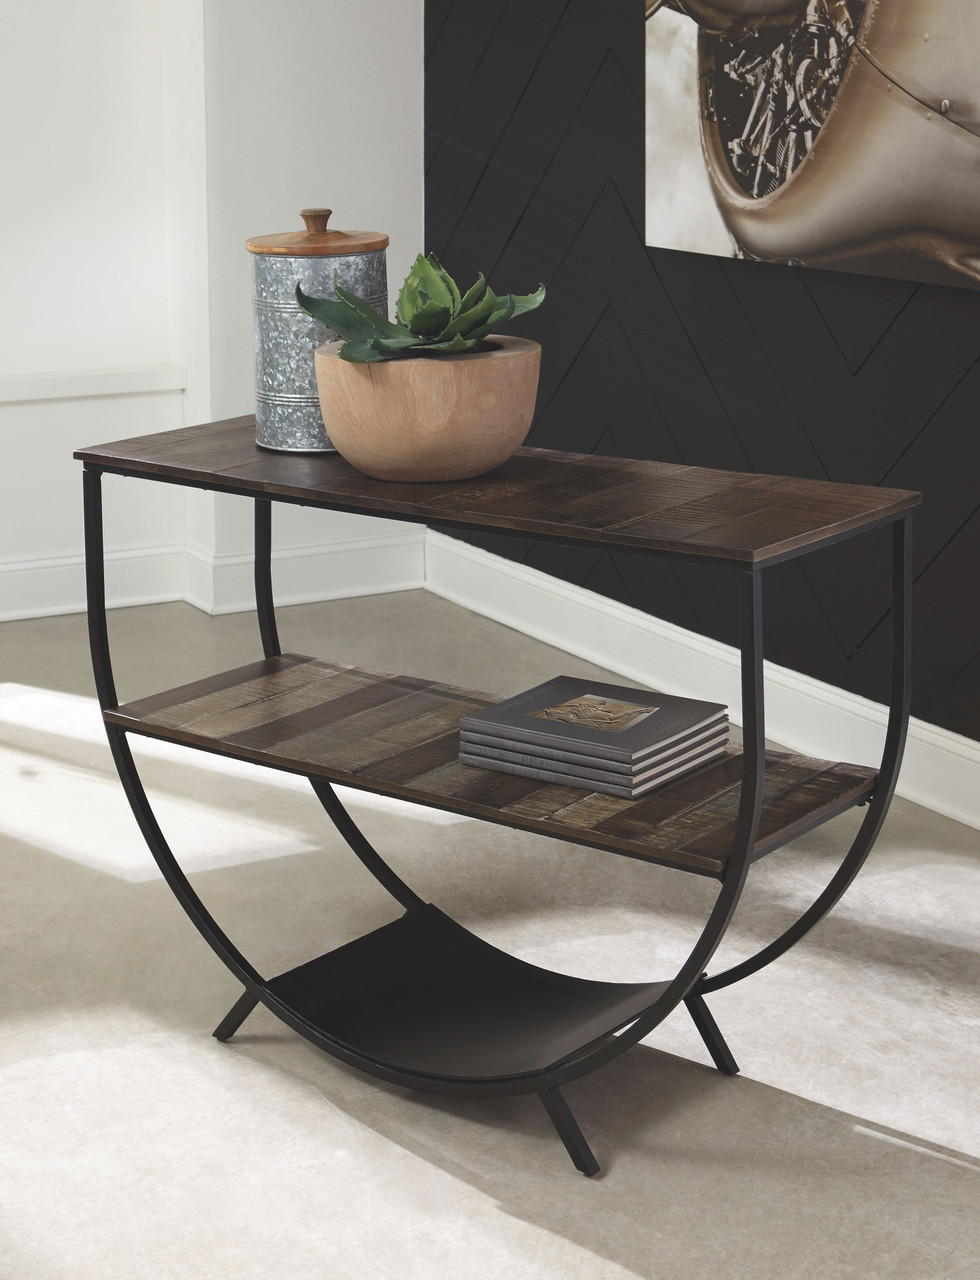 Lamoney Gray White Brown Console Sofa Table On Sale At American Furniture Of Slidell Serving Slidell La